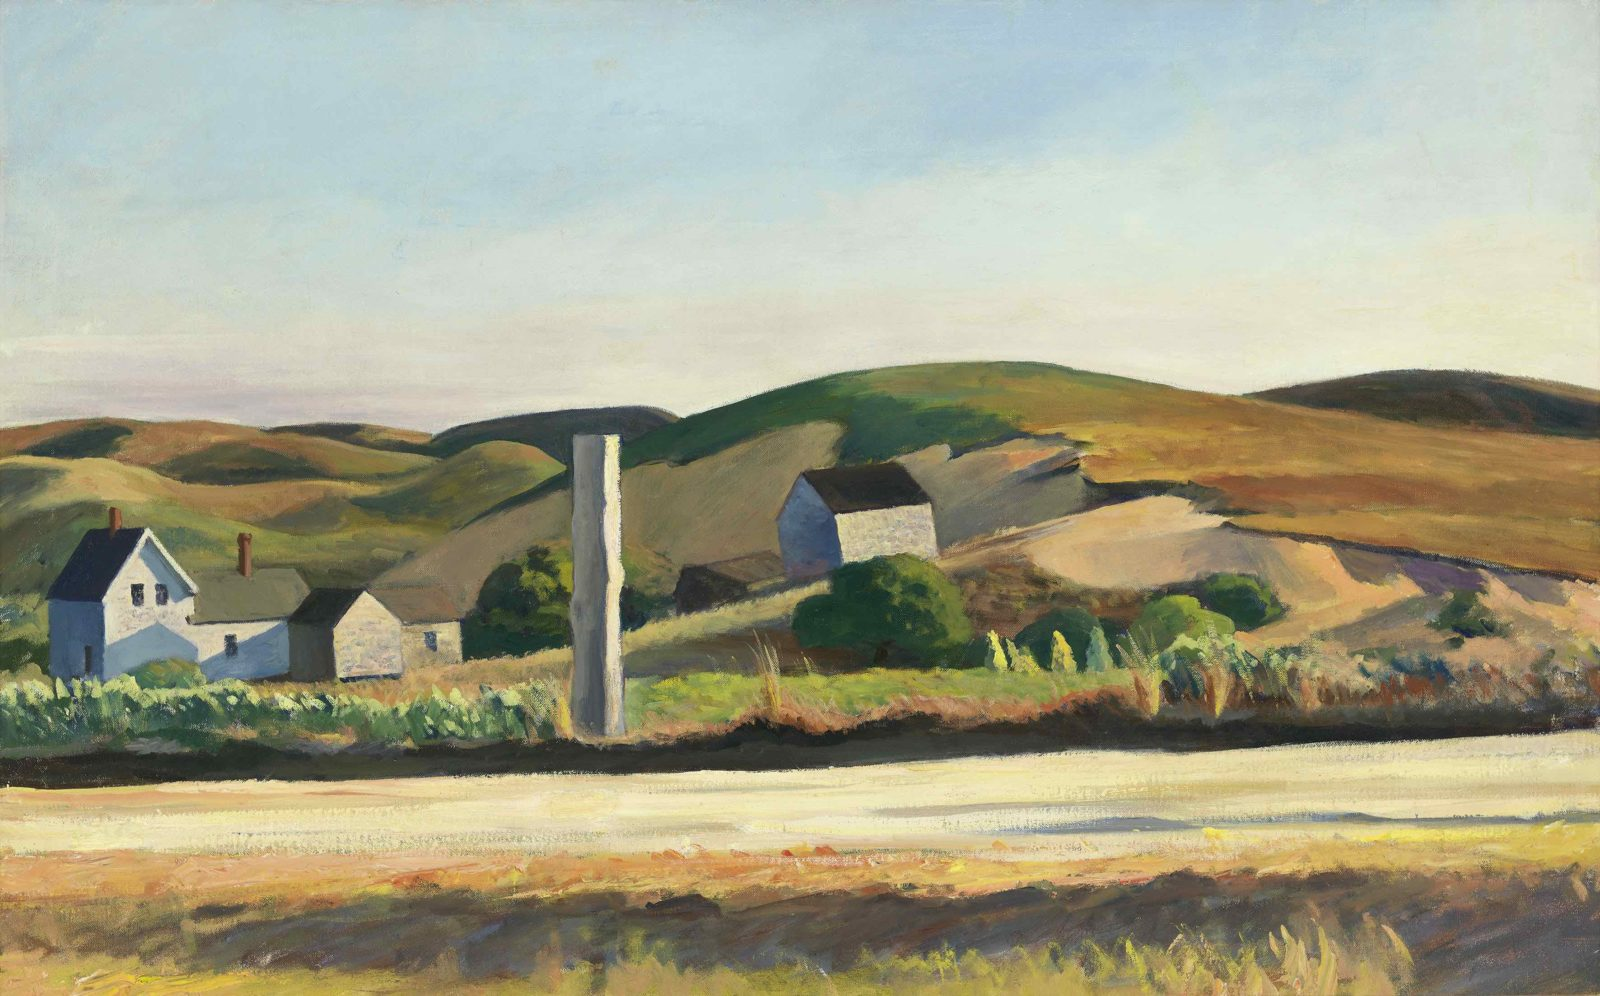 EDWARD HOPPER ROAD AND HOUSES, SOUTH TRURO, 1930–1933